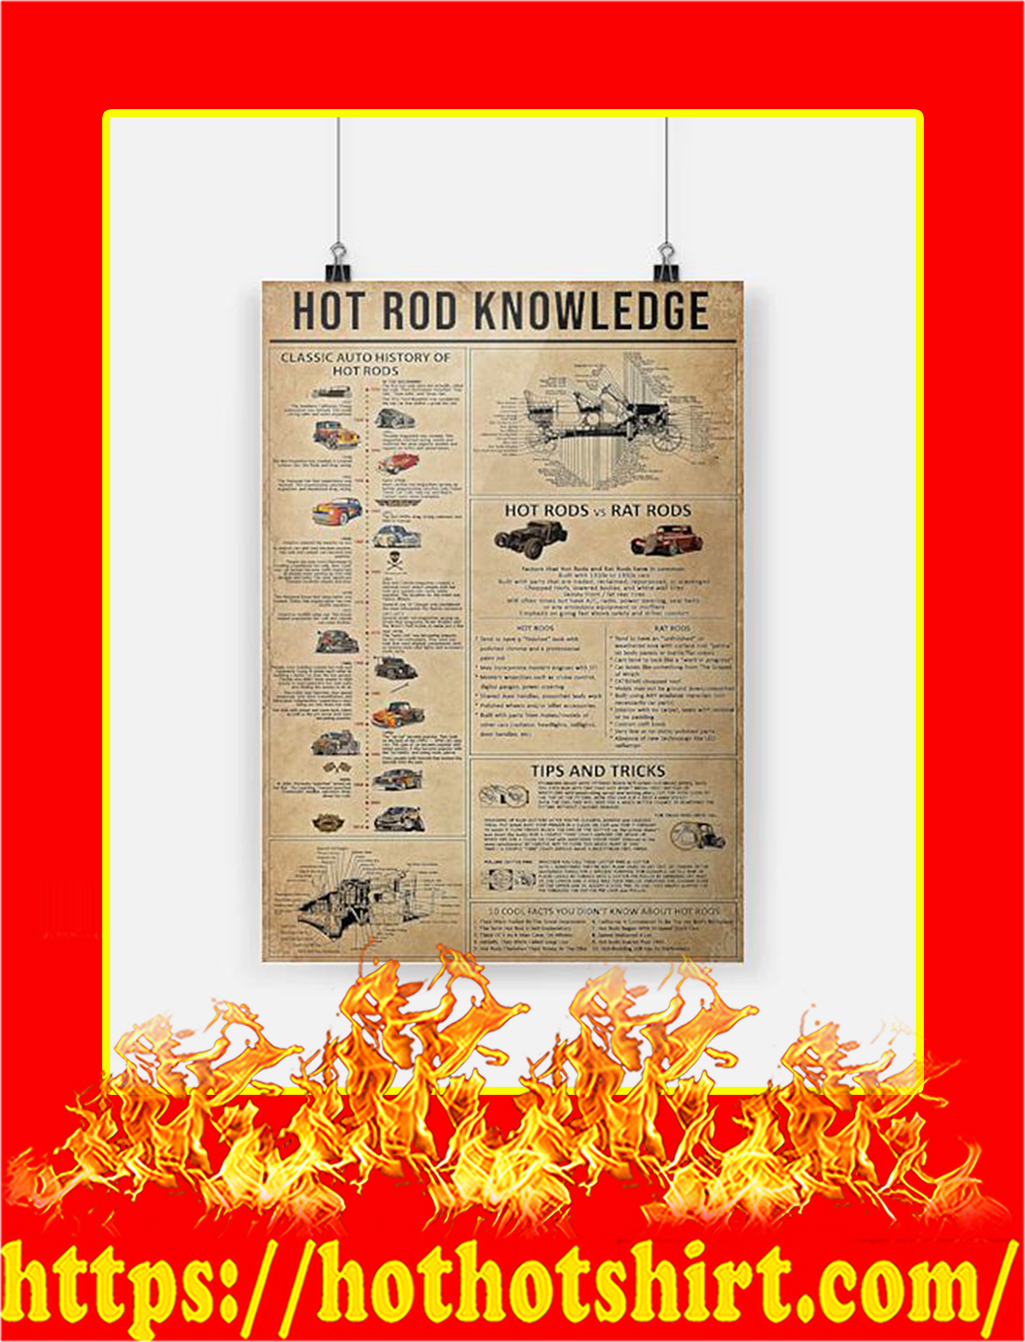 Hot rod knowledge Poster - A2